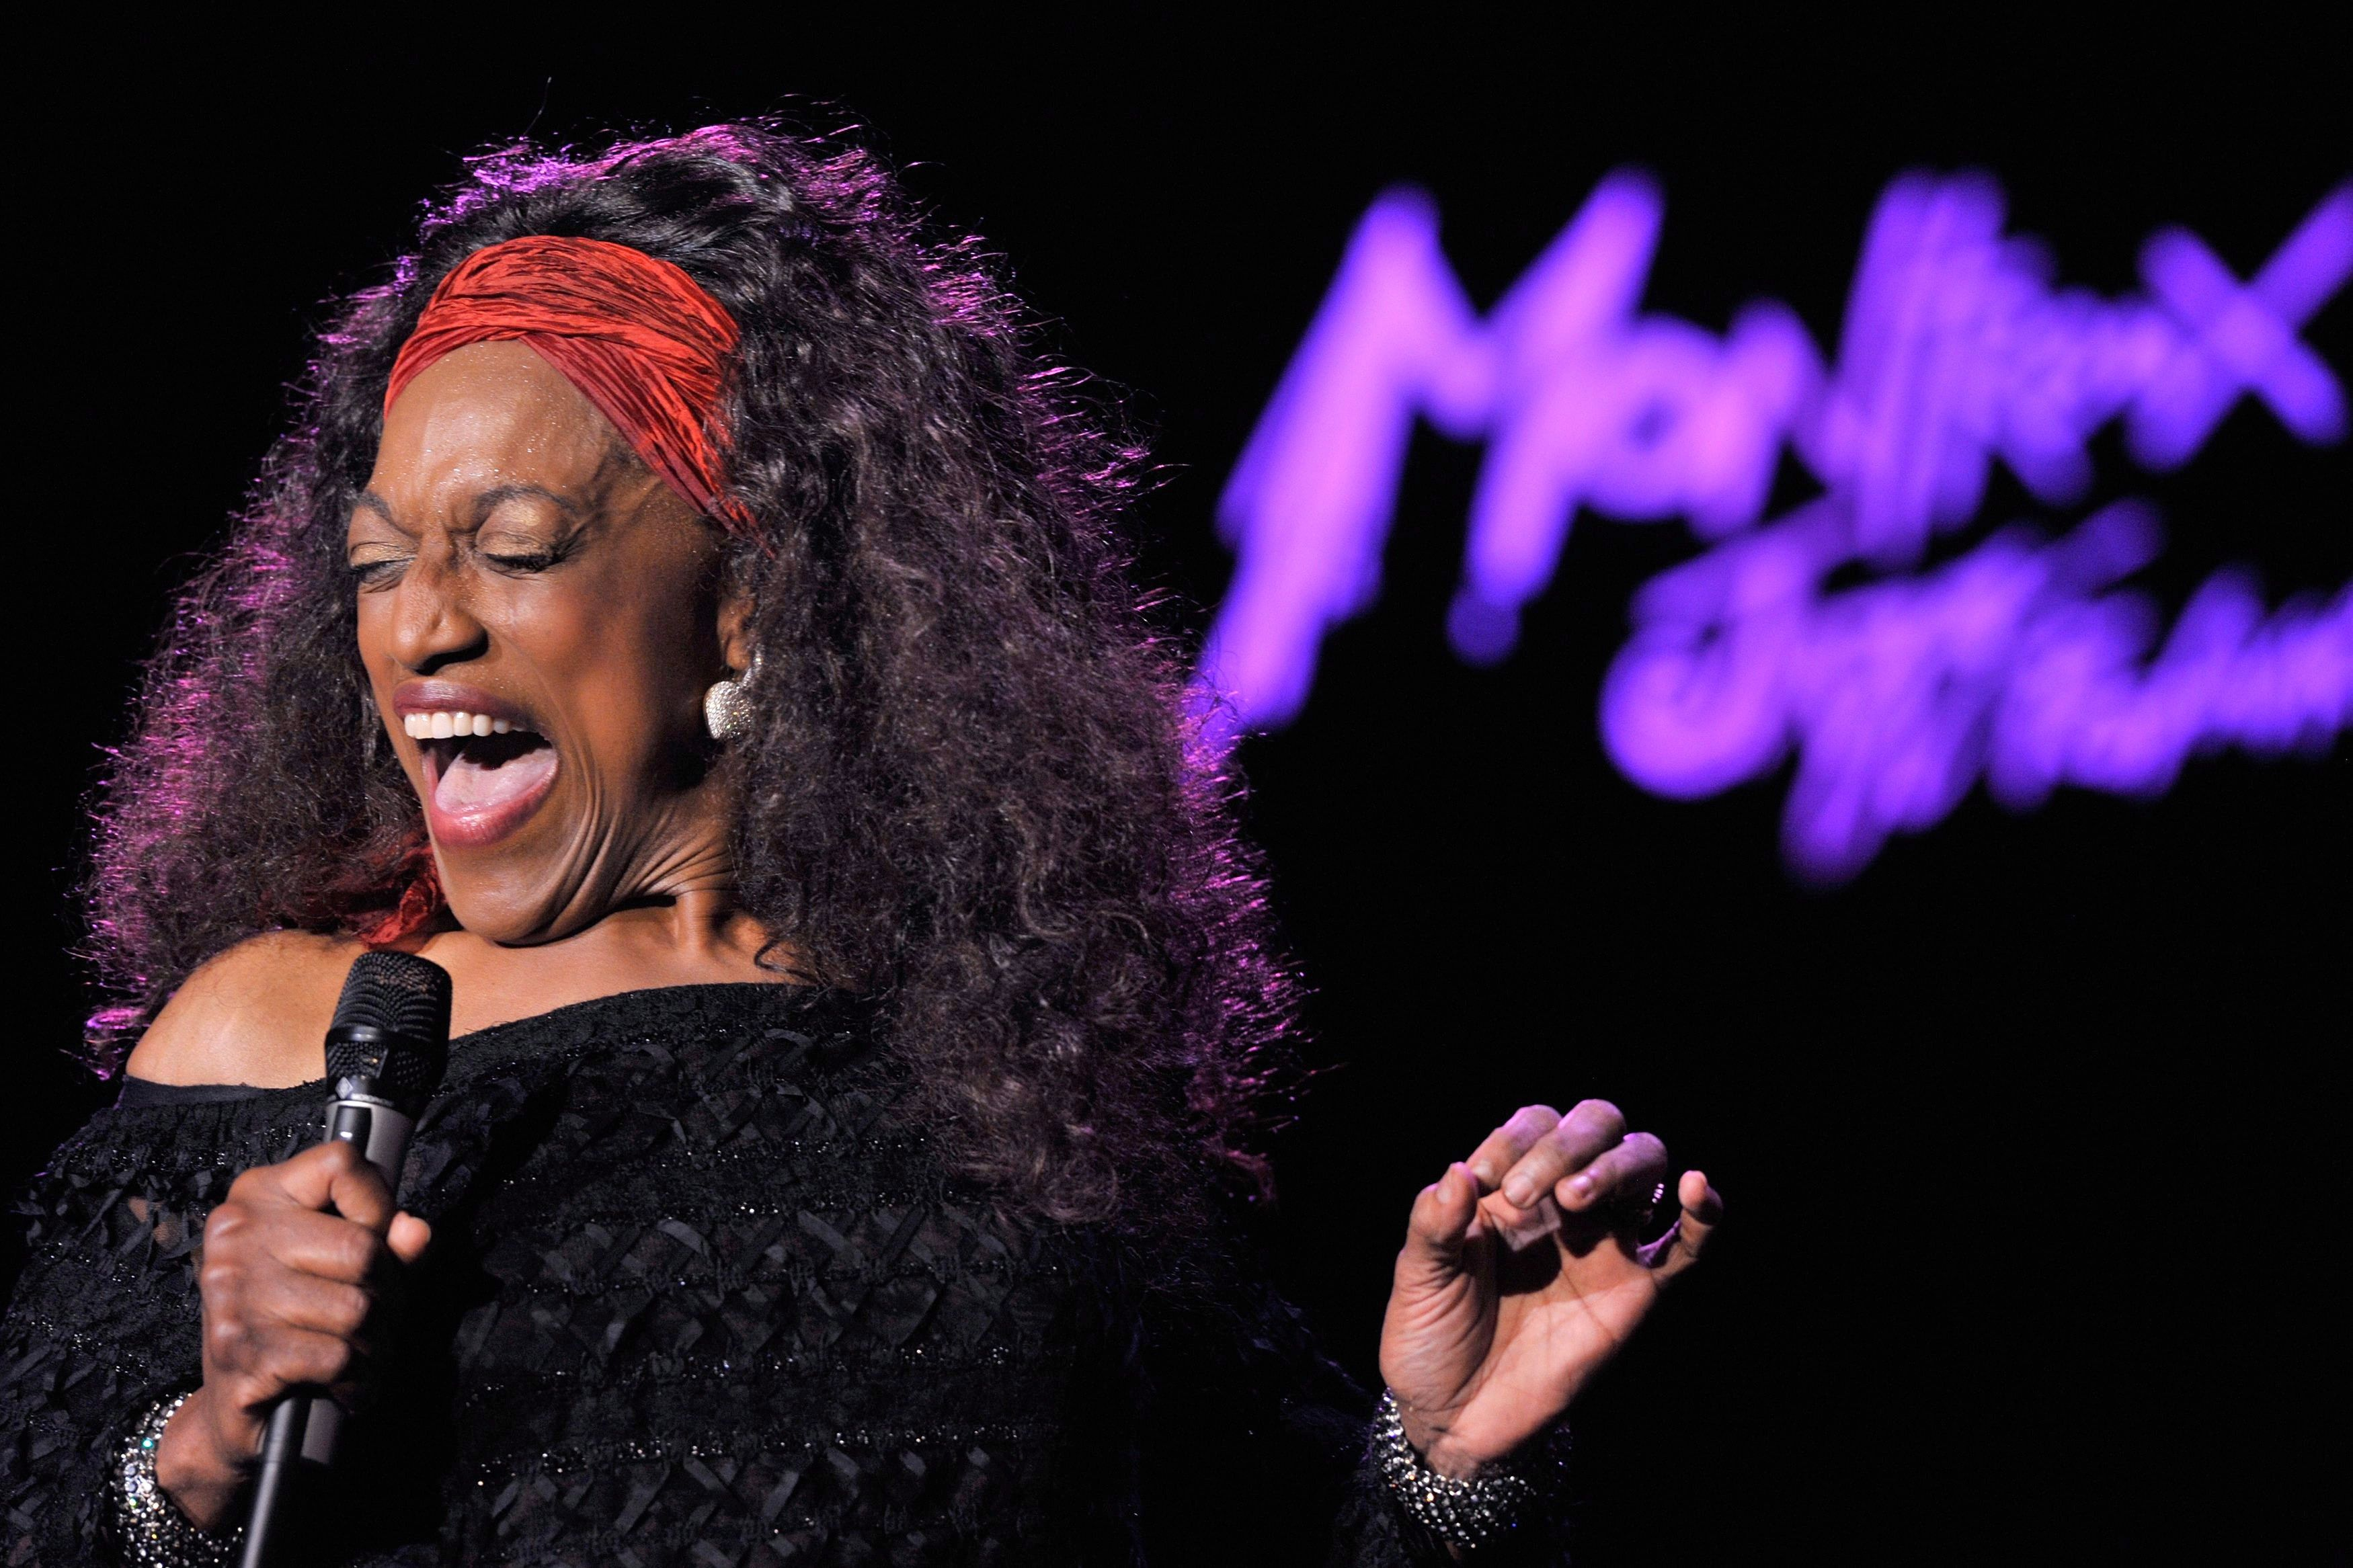 Montreux (Switzerland Schweiz Suisse).- (FILE) US opera singer Jessye Norman performs on the Stravinski Hall stage at the 44th Montreux Jazz Festival, in Montreux, Switzerland, late 04 July 2010 (reissued 01 October 2019). Norman died on 30 September 2019 in a hospital in New York, USA of septic shock and multiple organ failure related to complications from a spinal cord injury in 2015, announced her family. She was 74. (Suiza, Estados Unidos, Nueva York) EFE/EPA/DOMINIC FAVRE *** Local Caption *** 02237265